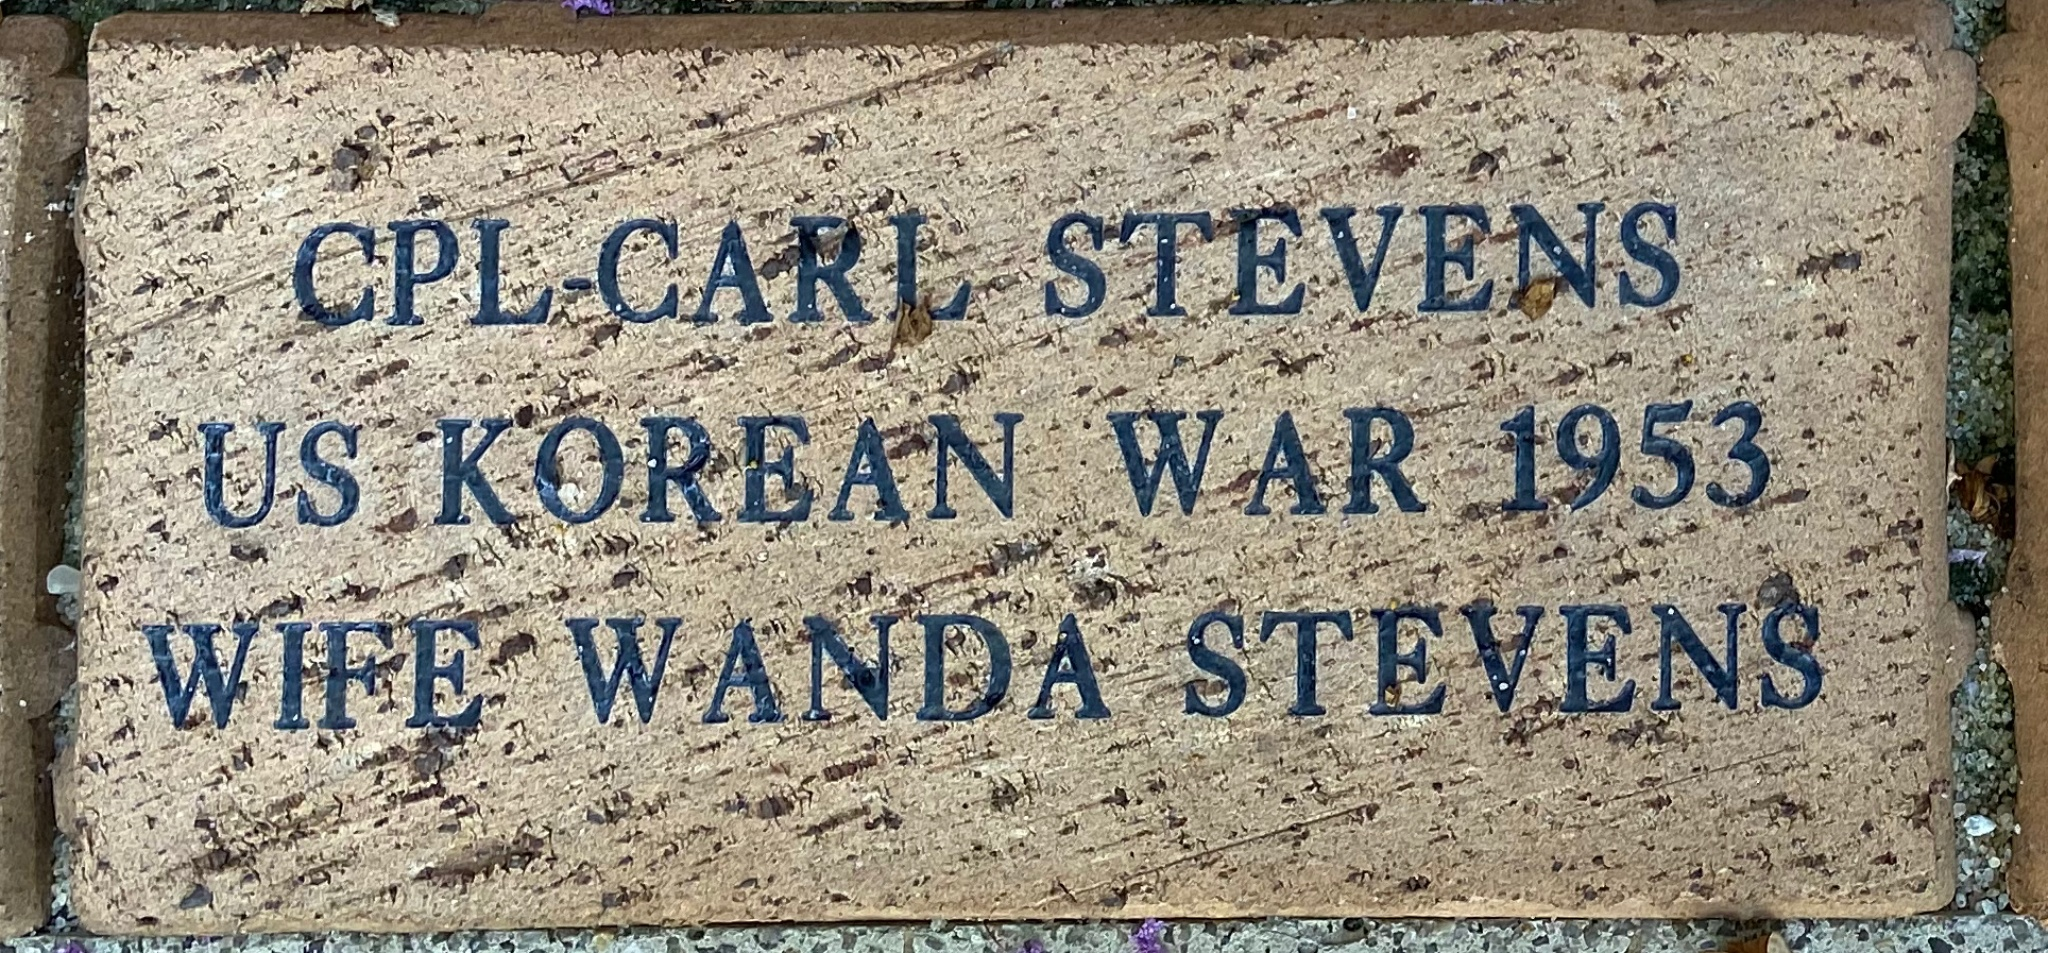 CPL-CARL STEVENS US KOREAN WAR 1953 WIFE WANDA STEVENS